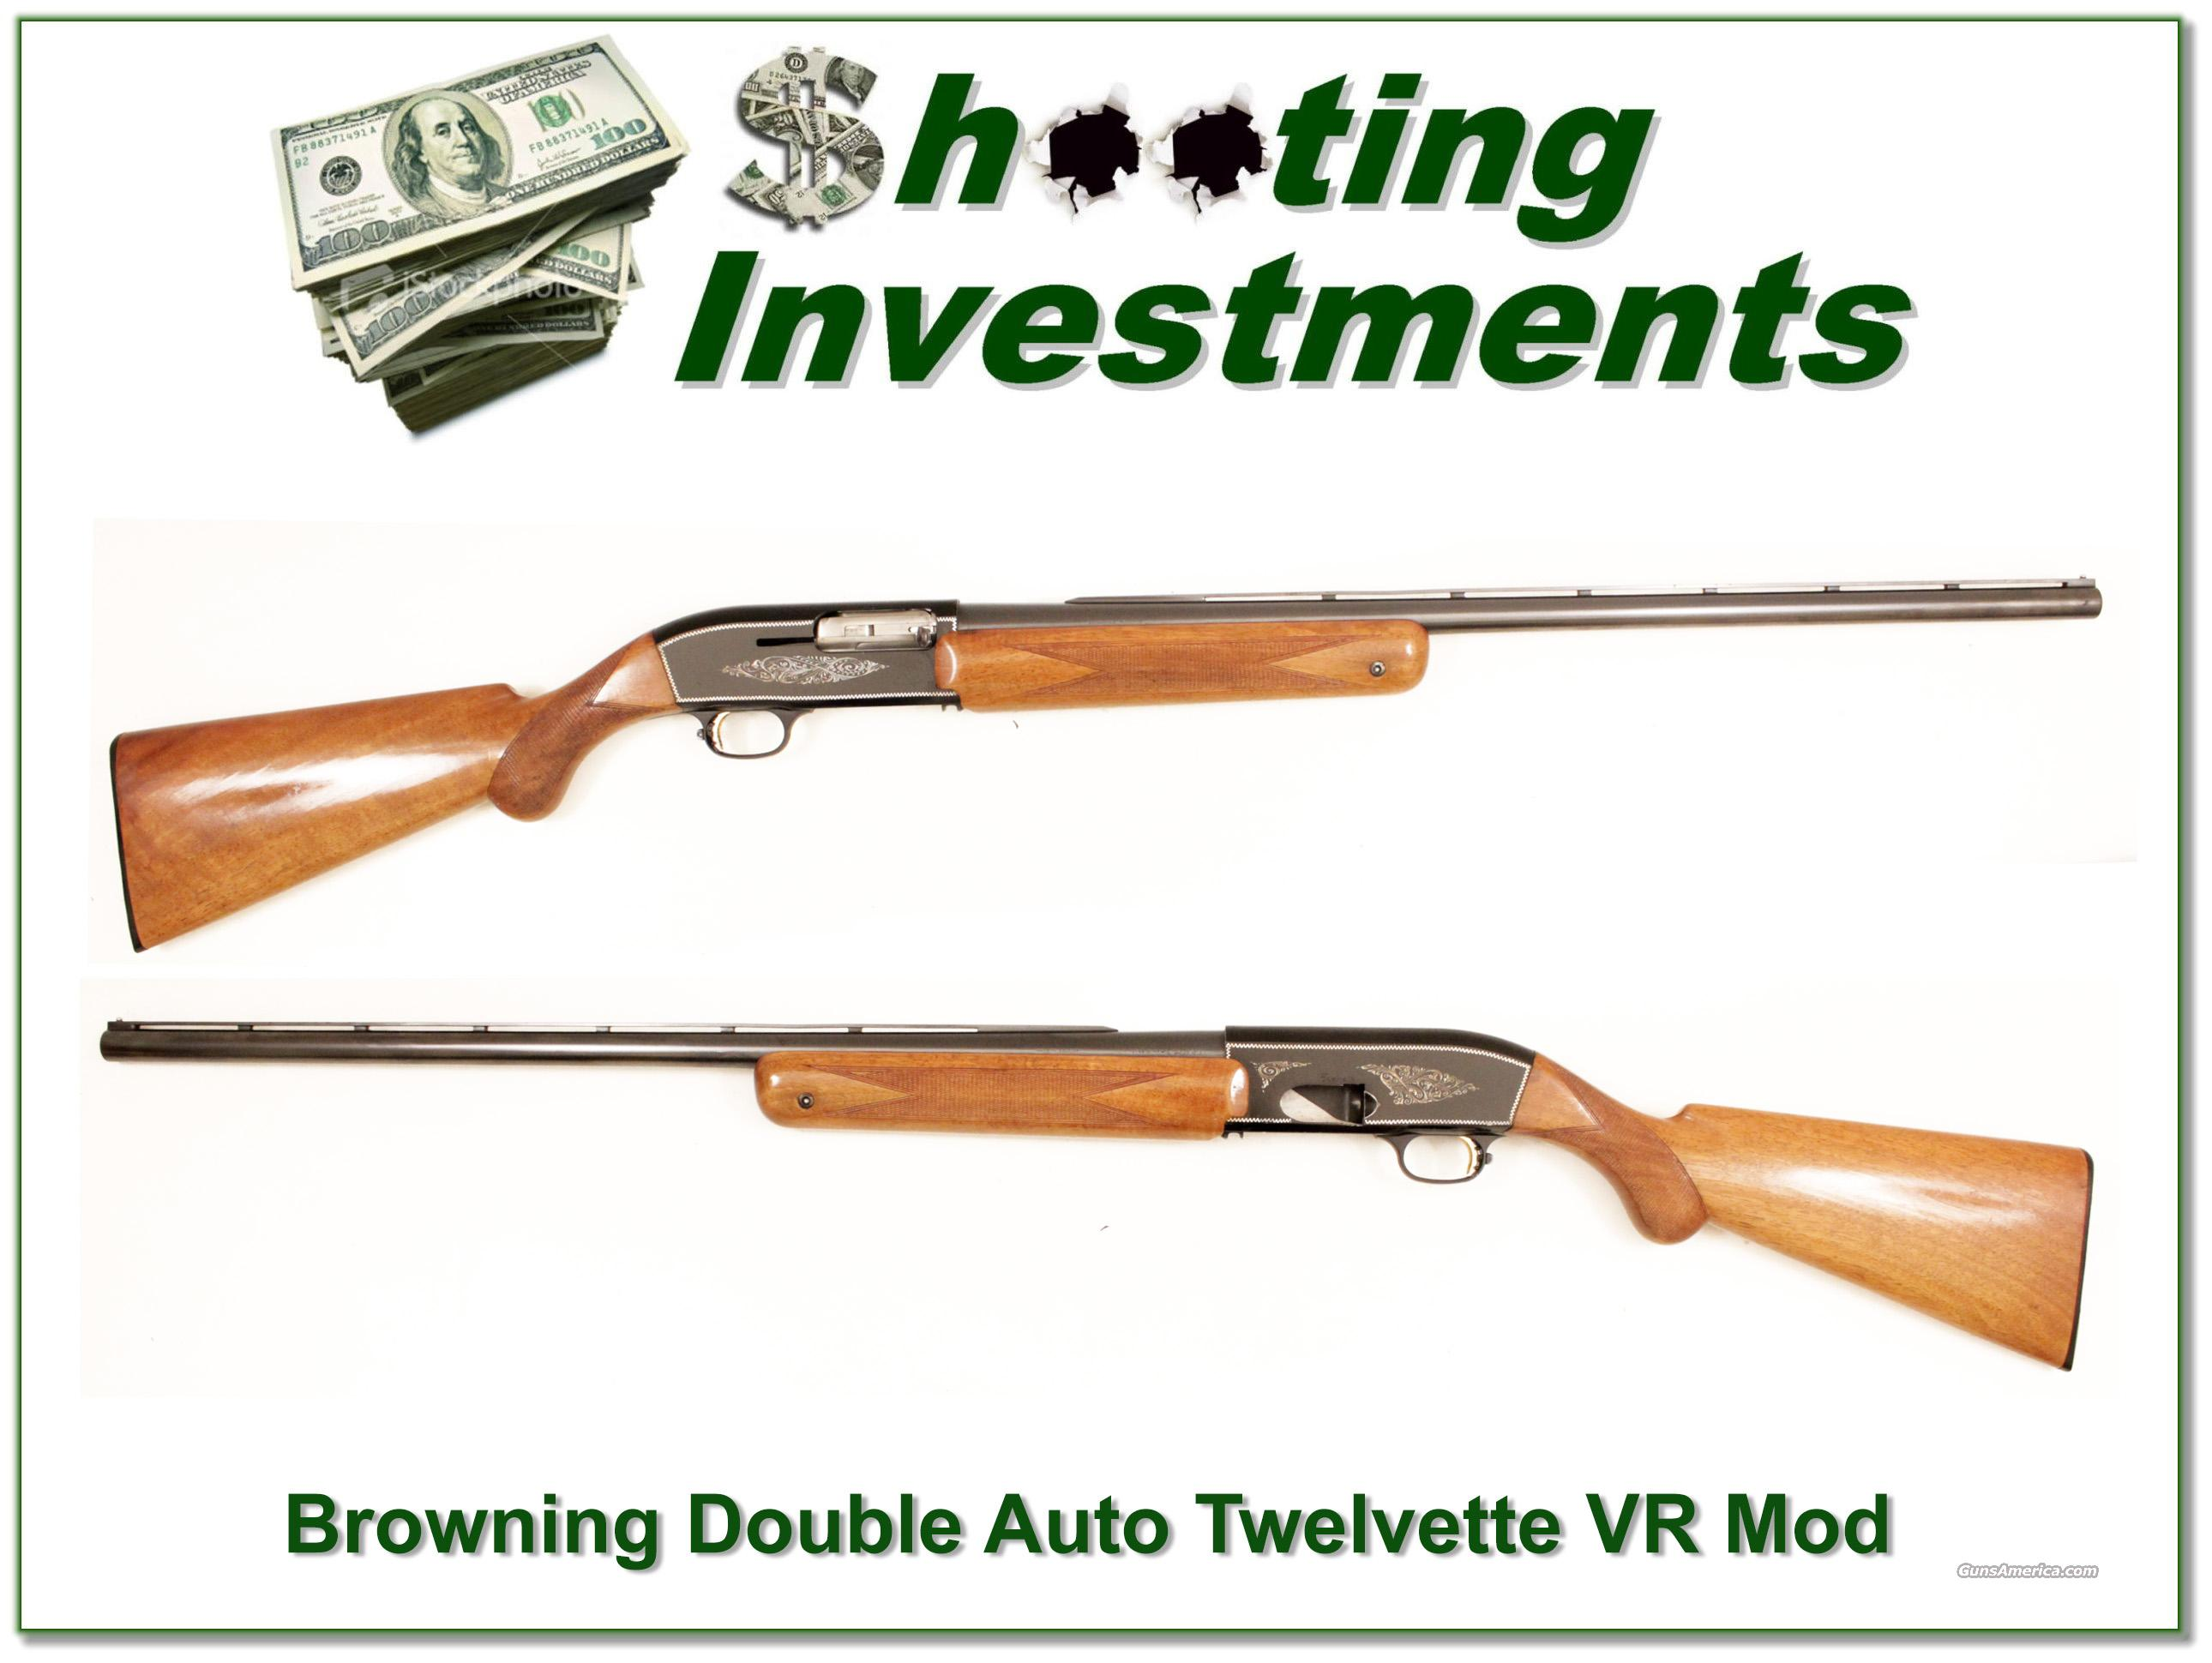 Browning Twelvette '65 Belgium Double Auto Blond Wood  Guns > Shotguns > Browning Shotguns > Autoloaders > Hunting